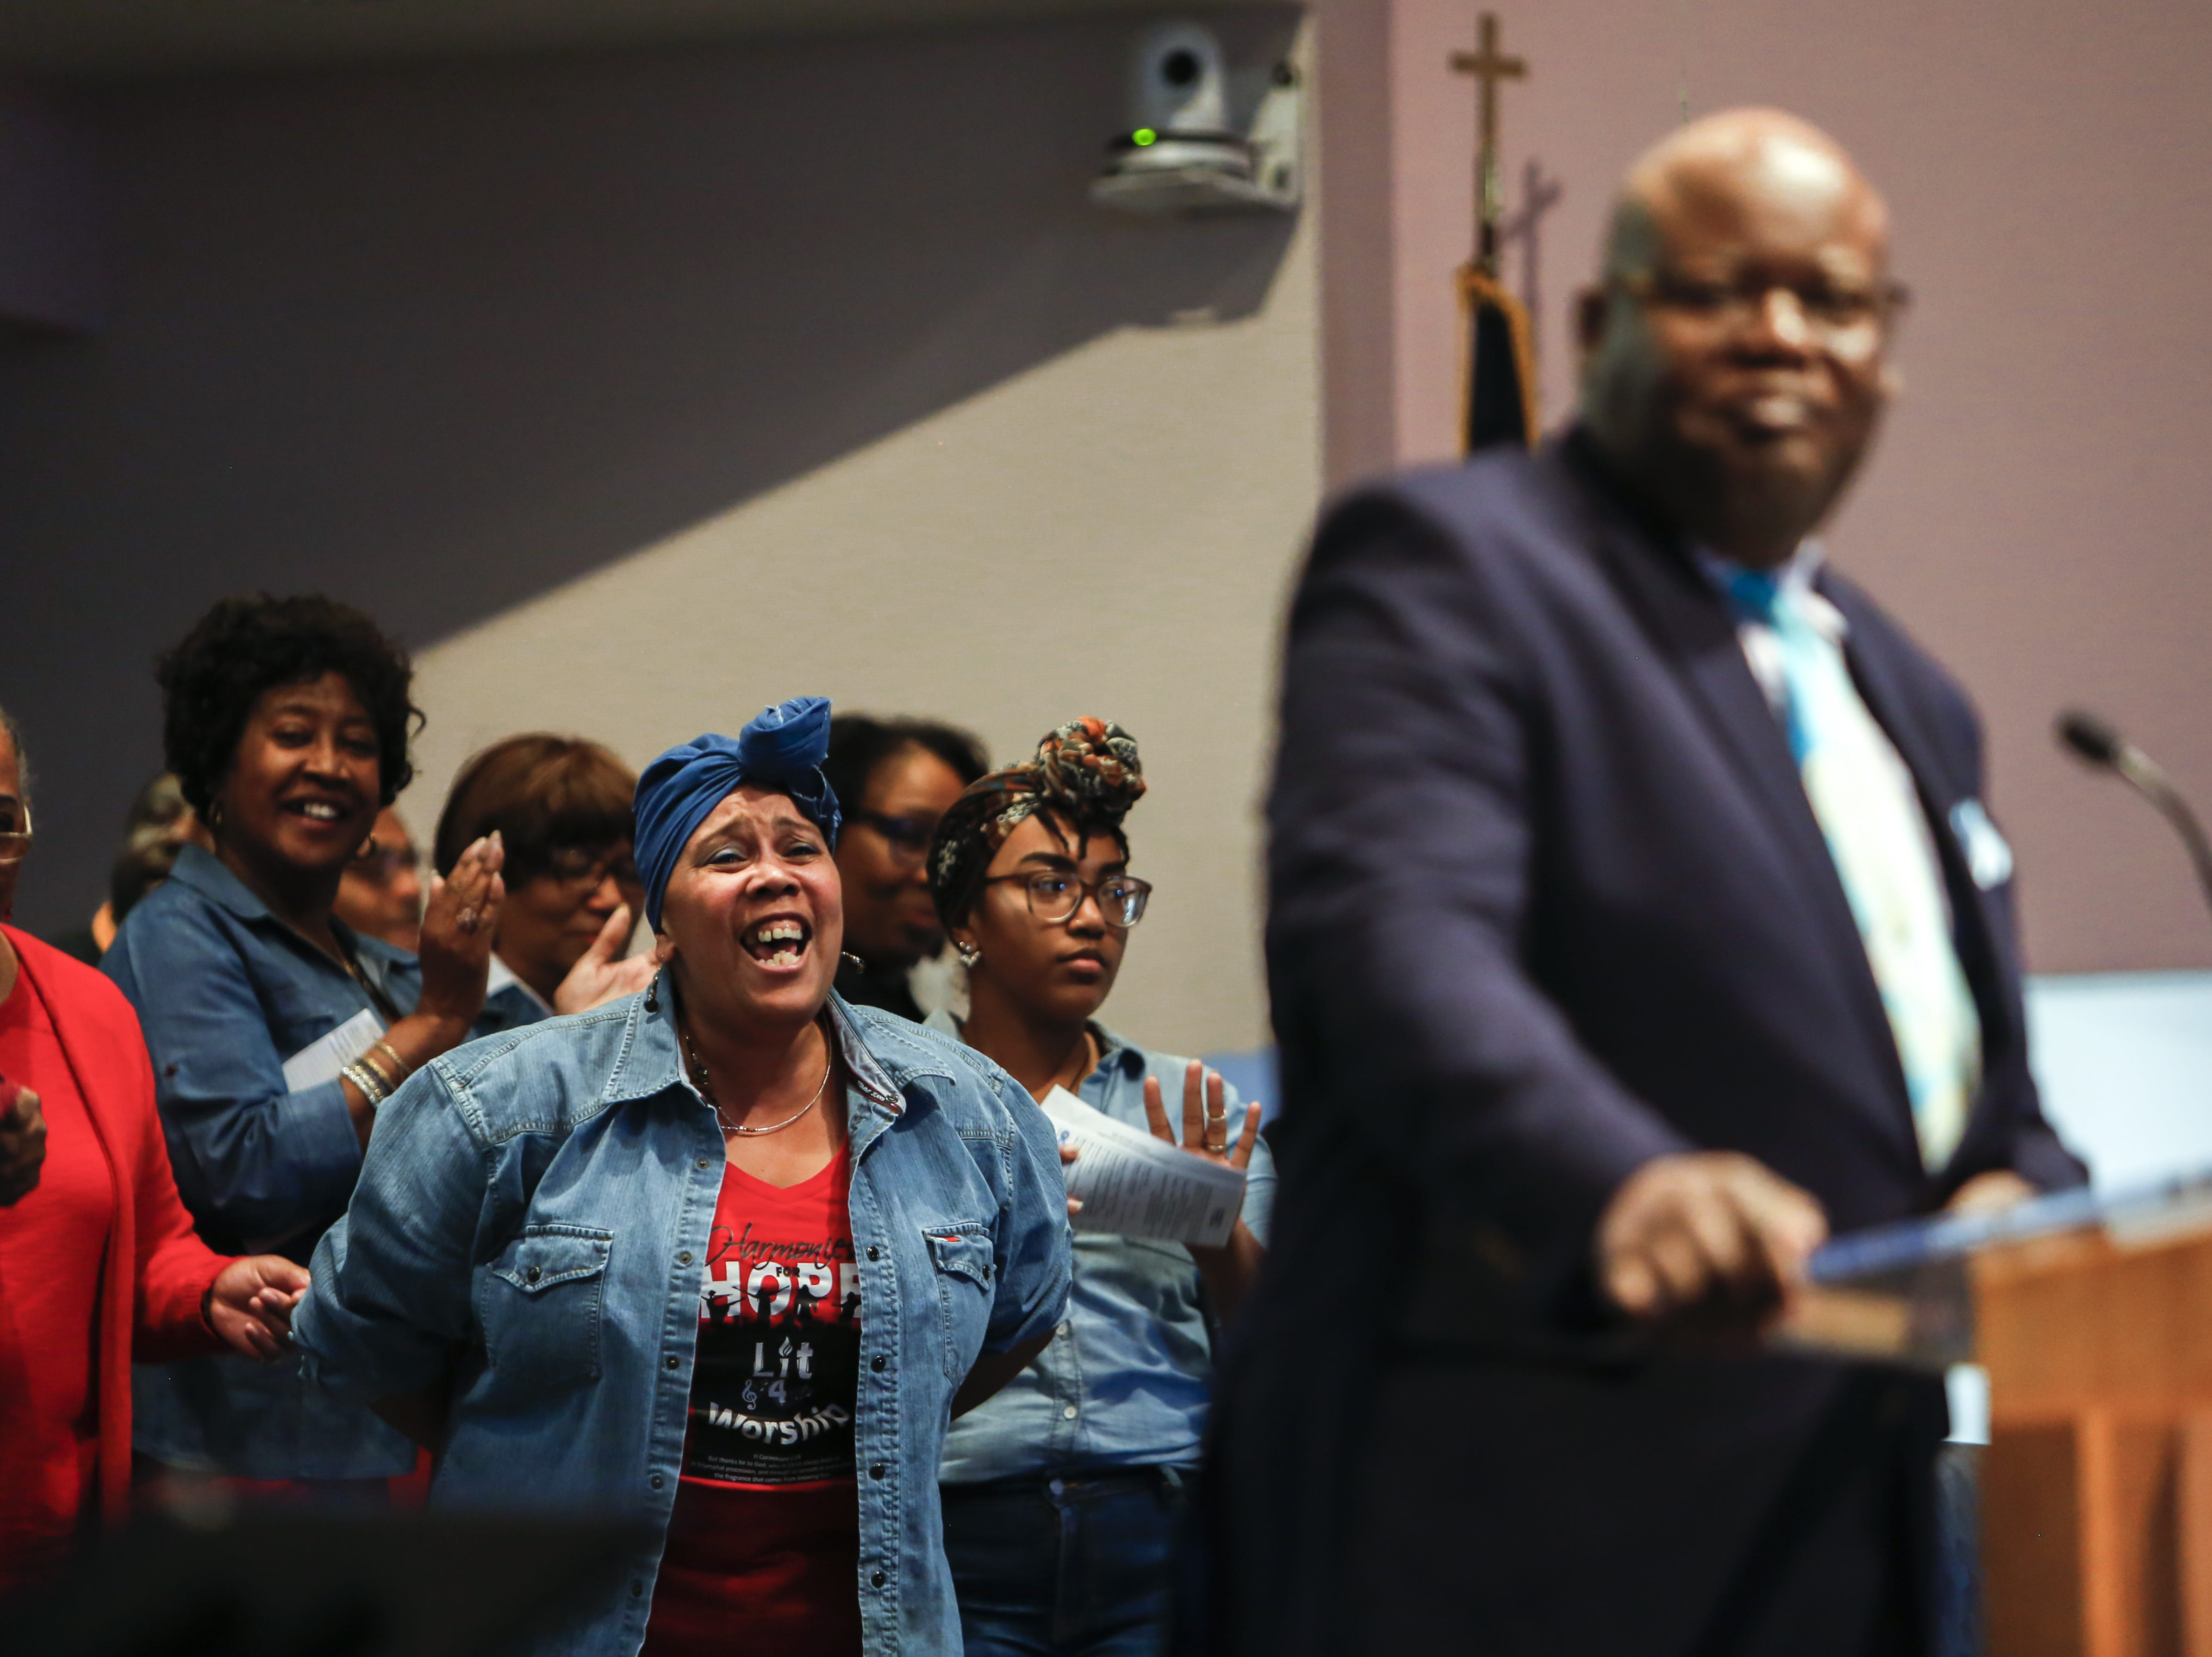 Praise team member Susan Rayford, left, calls out in song as Elder Jerome Ferrell begins his Scripture reading at First Institutional Baptist Church on Sunday, Jan. 20, 2019.